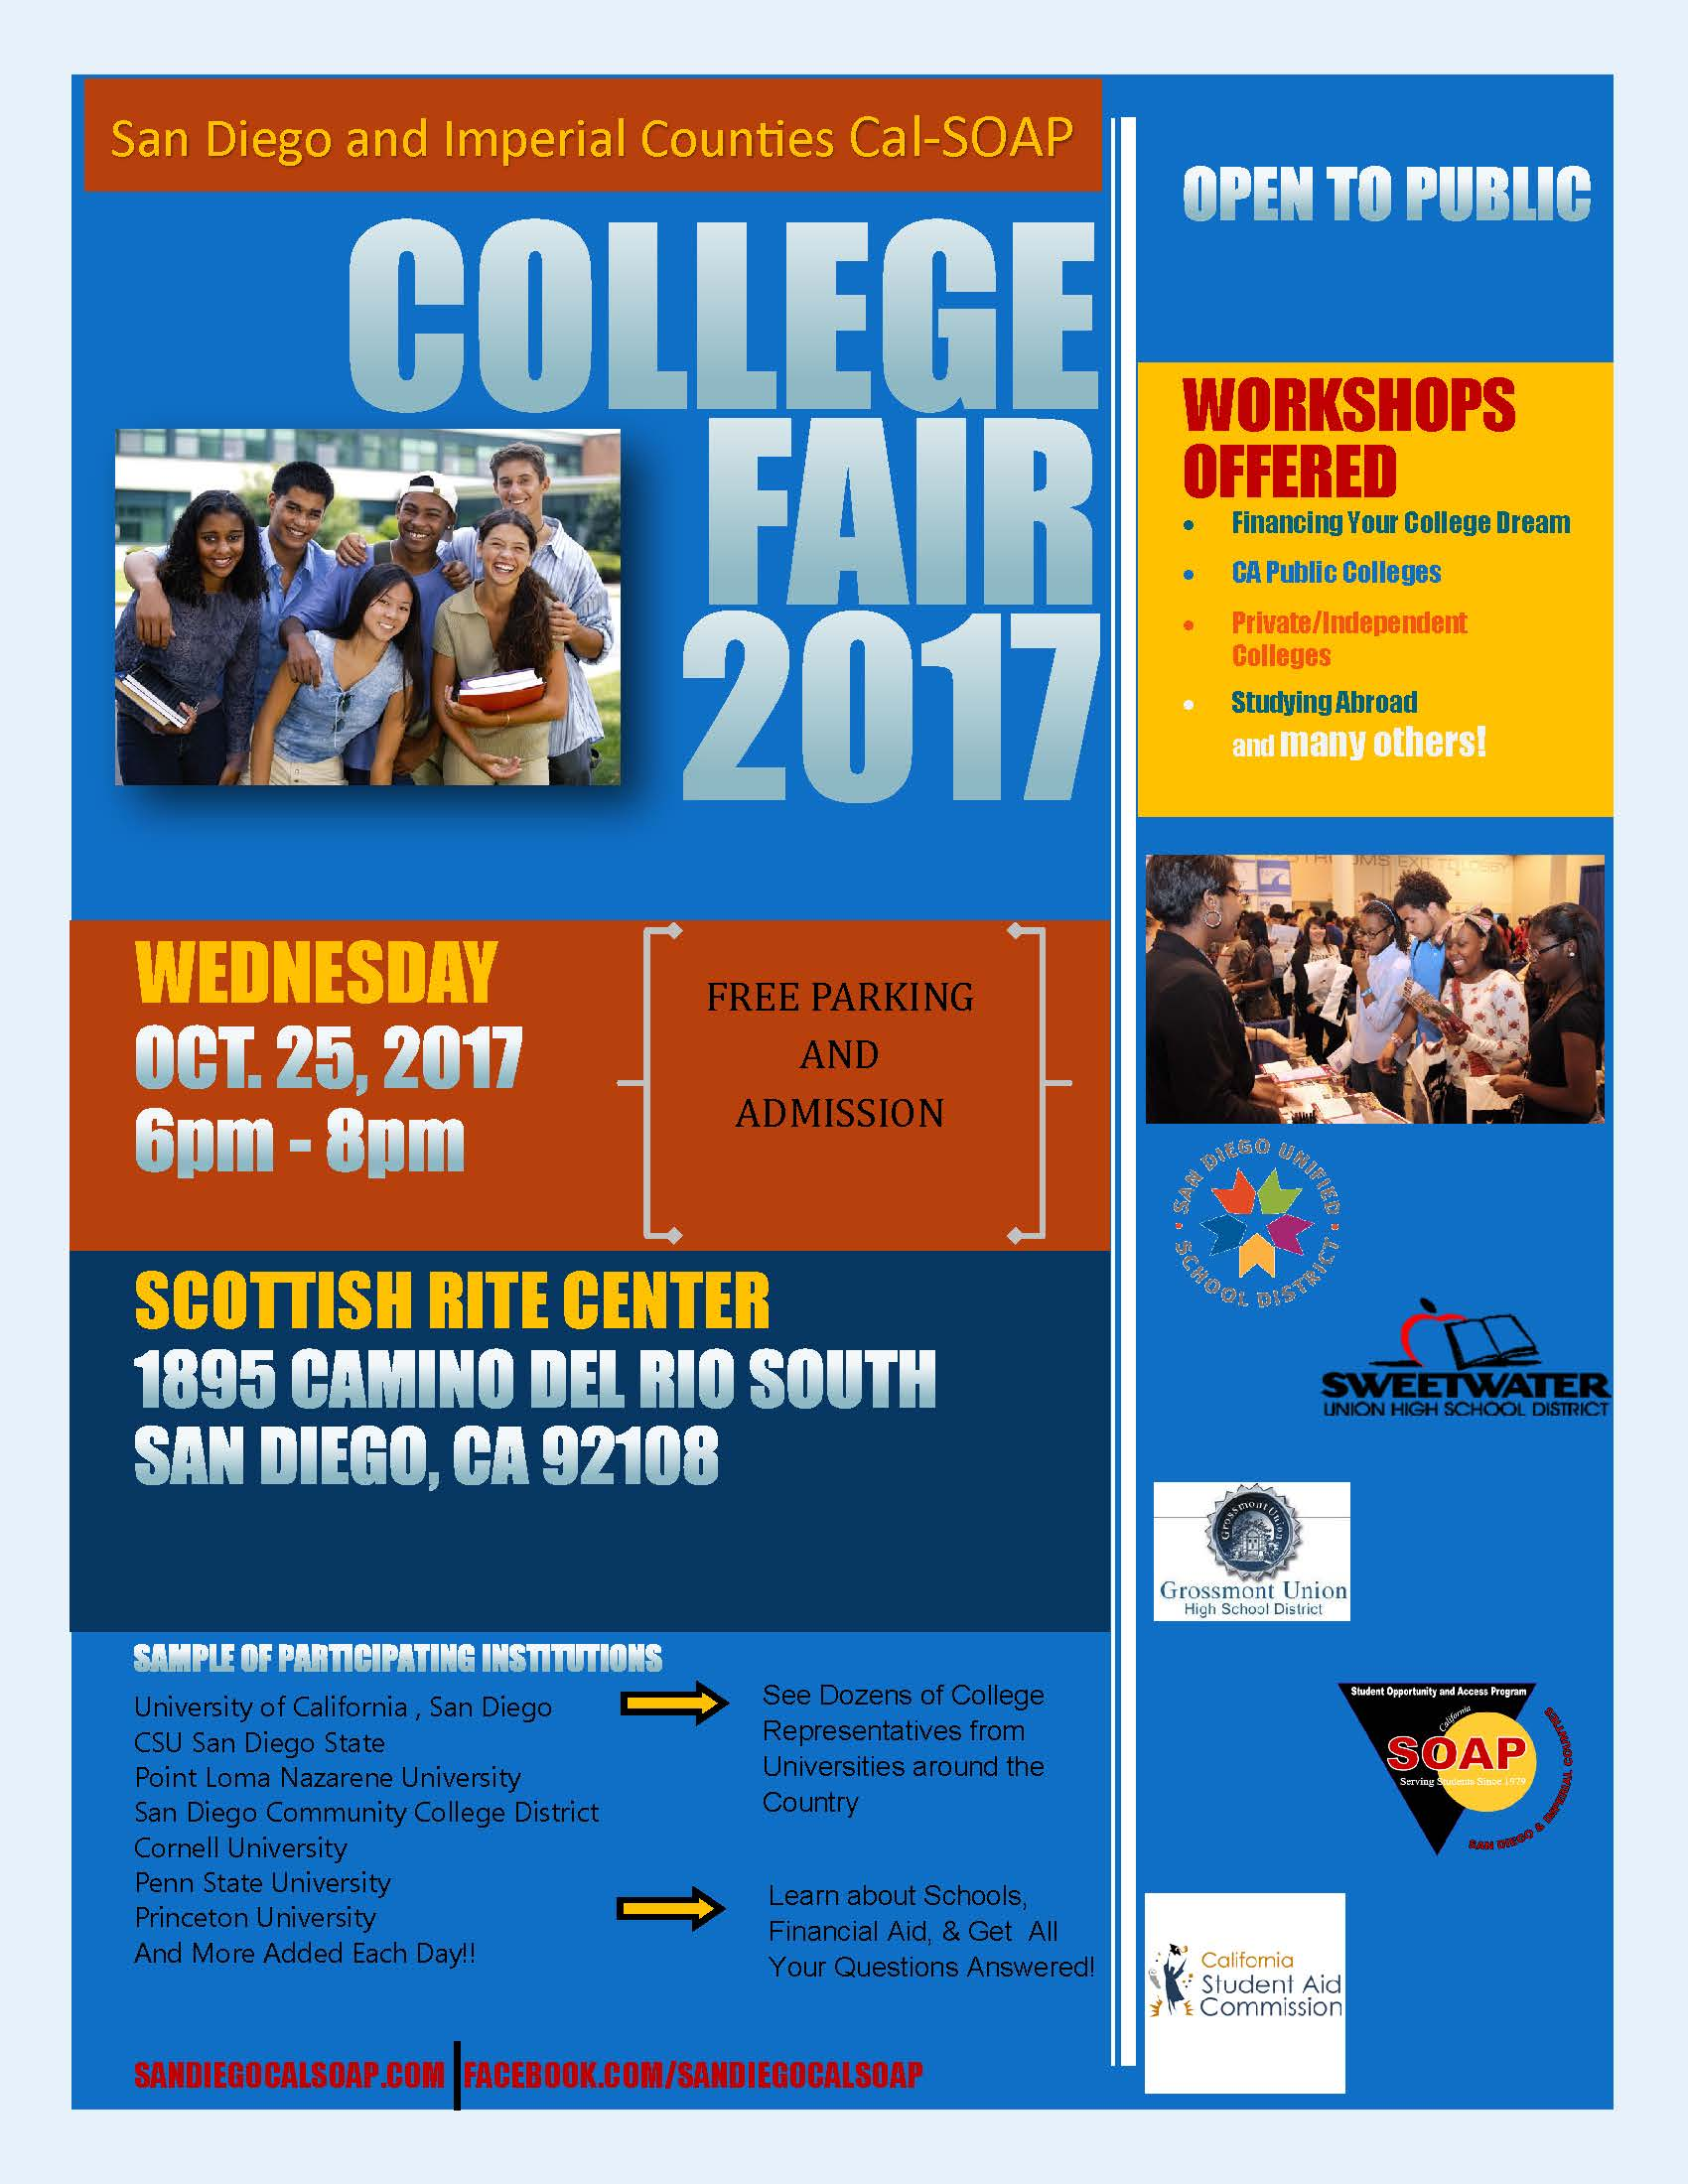 College Fair 2017 Information